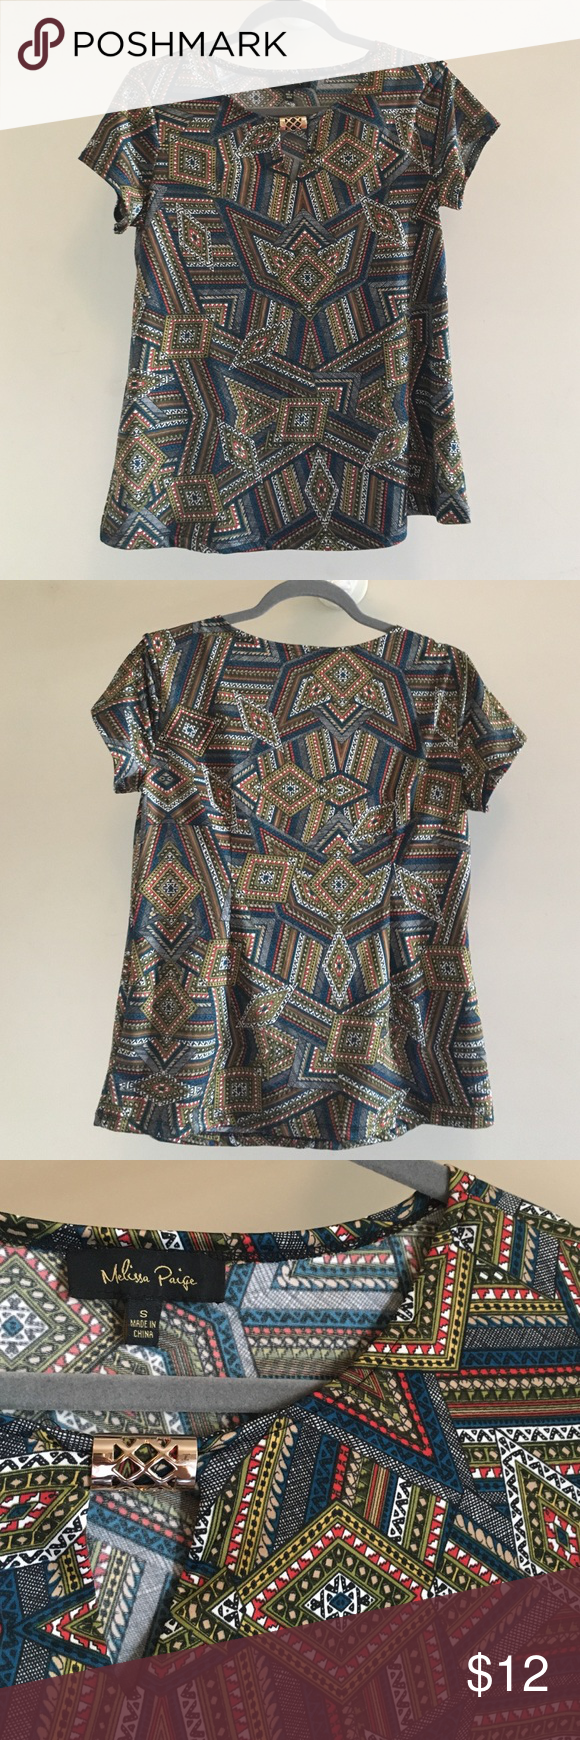 Cute patterned top. Multi color vintage looking top, great to dress up or down, cute gold peice at neck line. Very comfortable. Tops Blouses